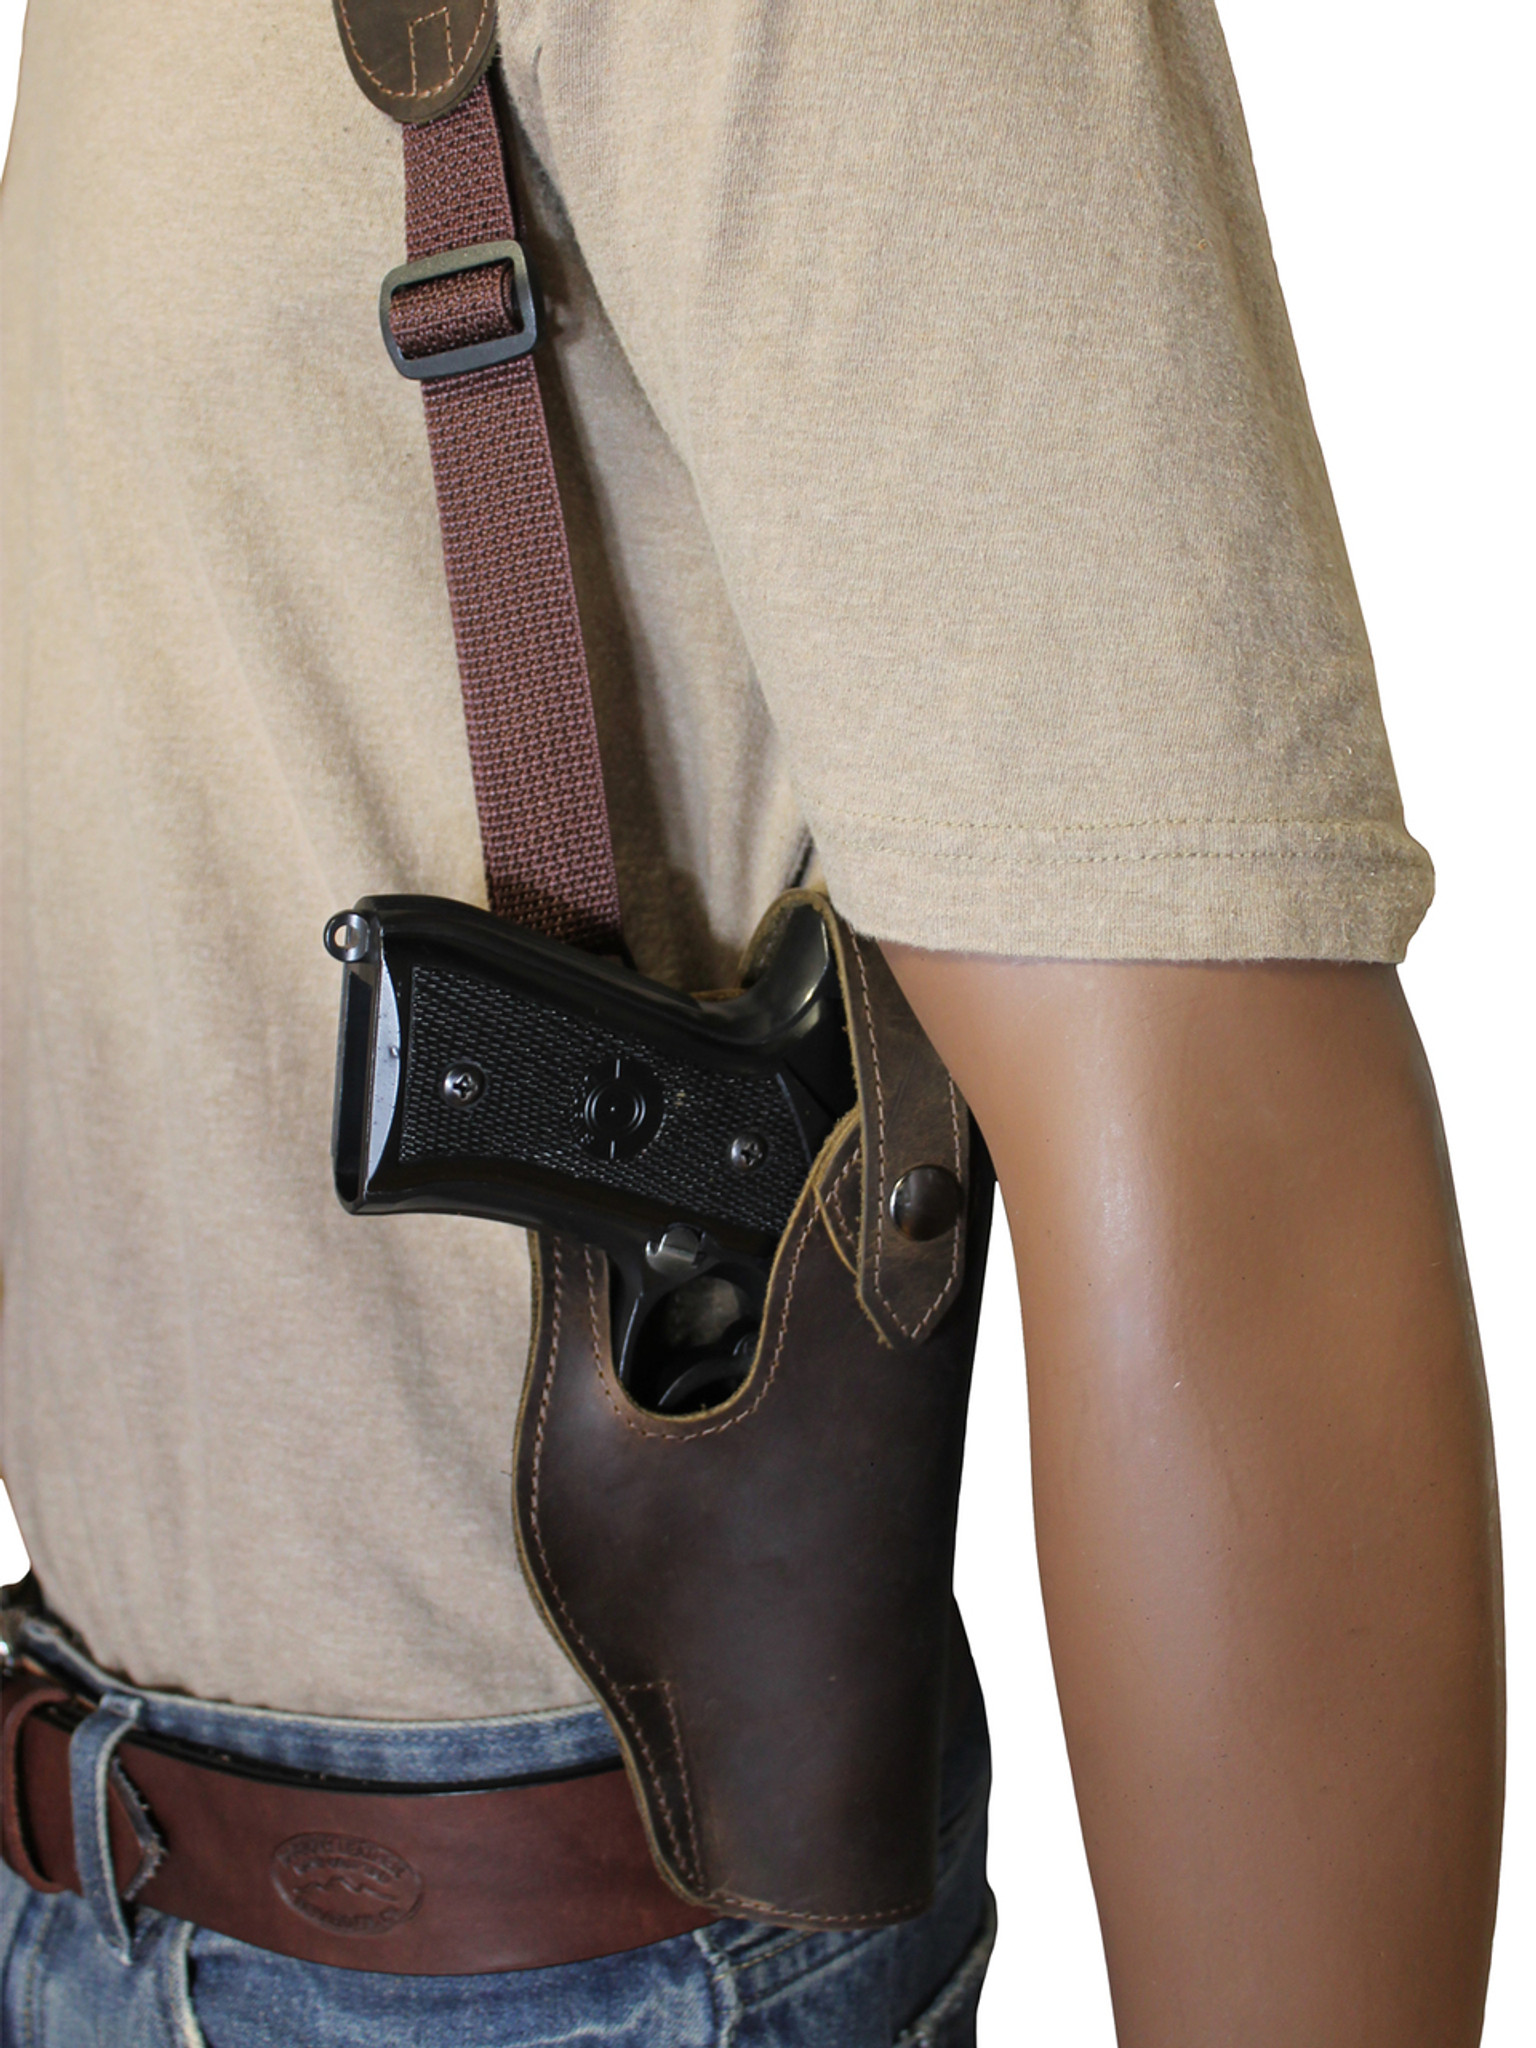 Leather Vertical Shoulder Holster with Magazine Pouch Full